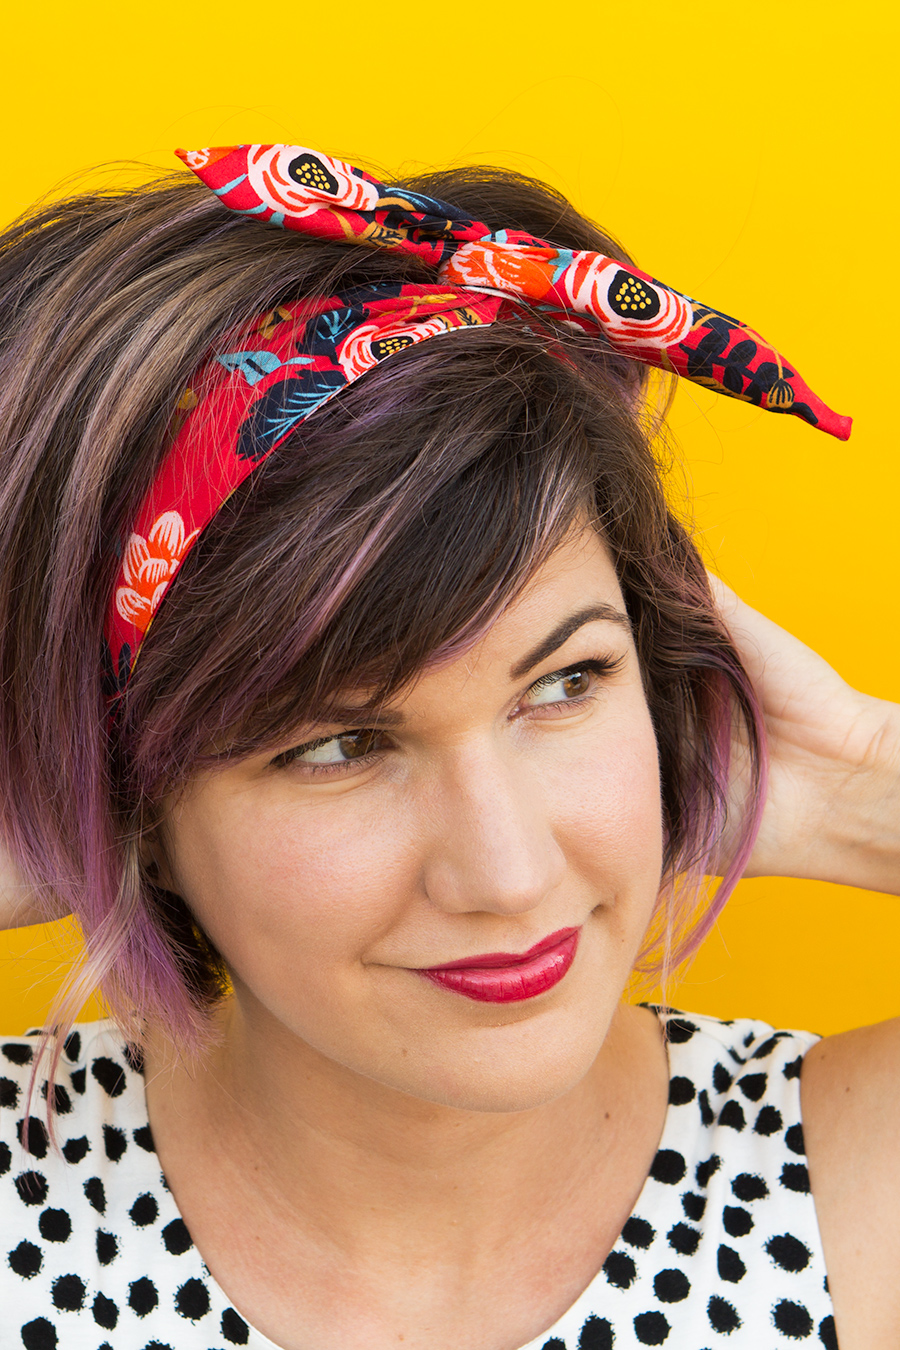 Need a last minute gift? Make a no-sew wire headband for all your besties!